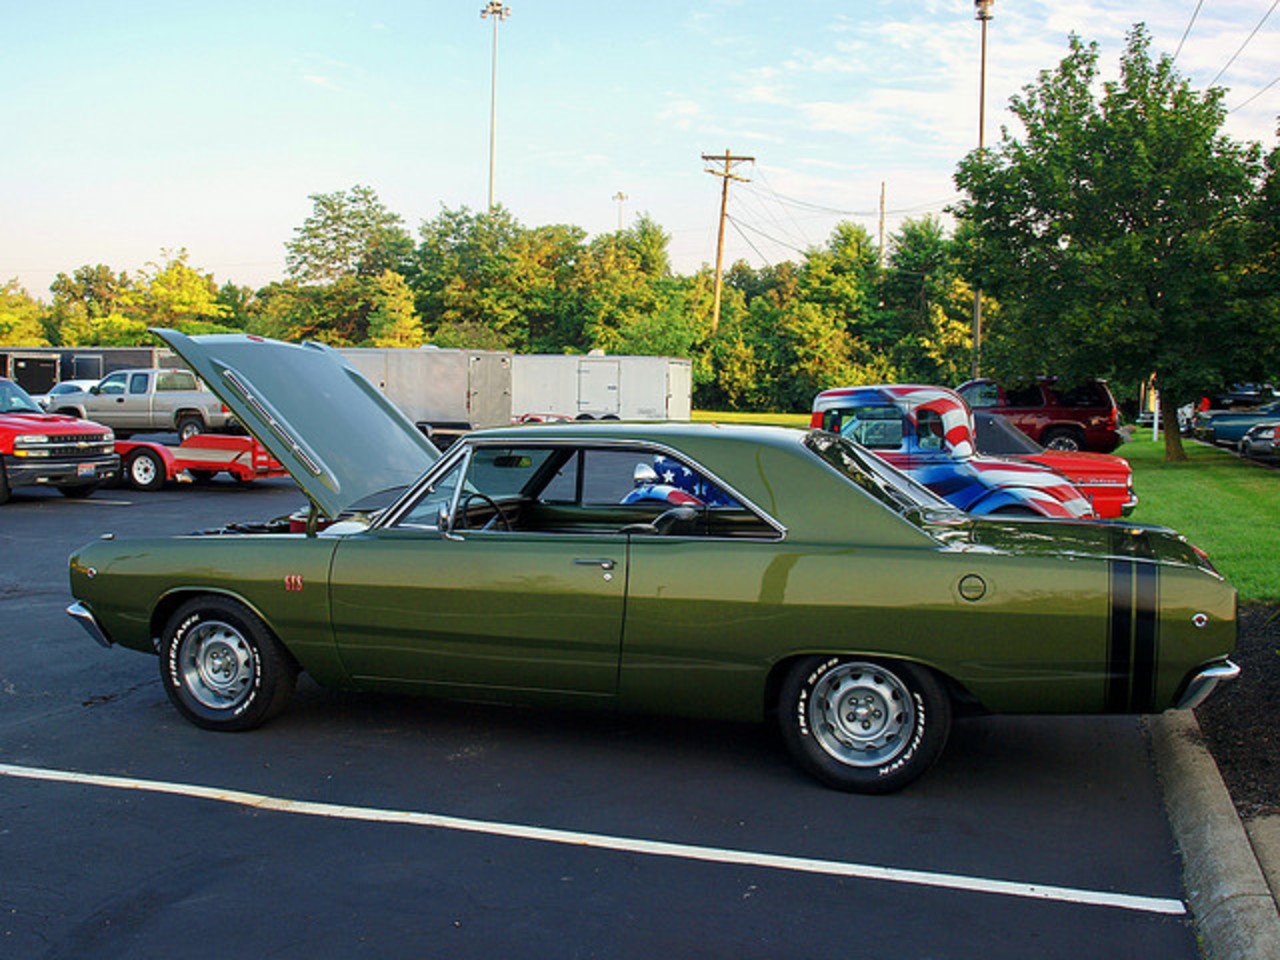 1968 Dodge Dart GTS"